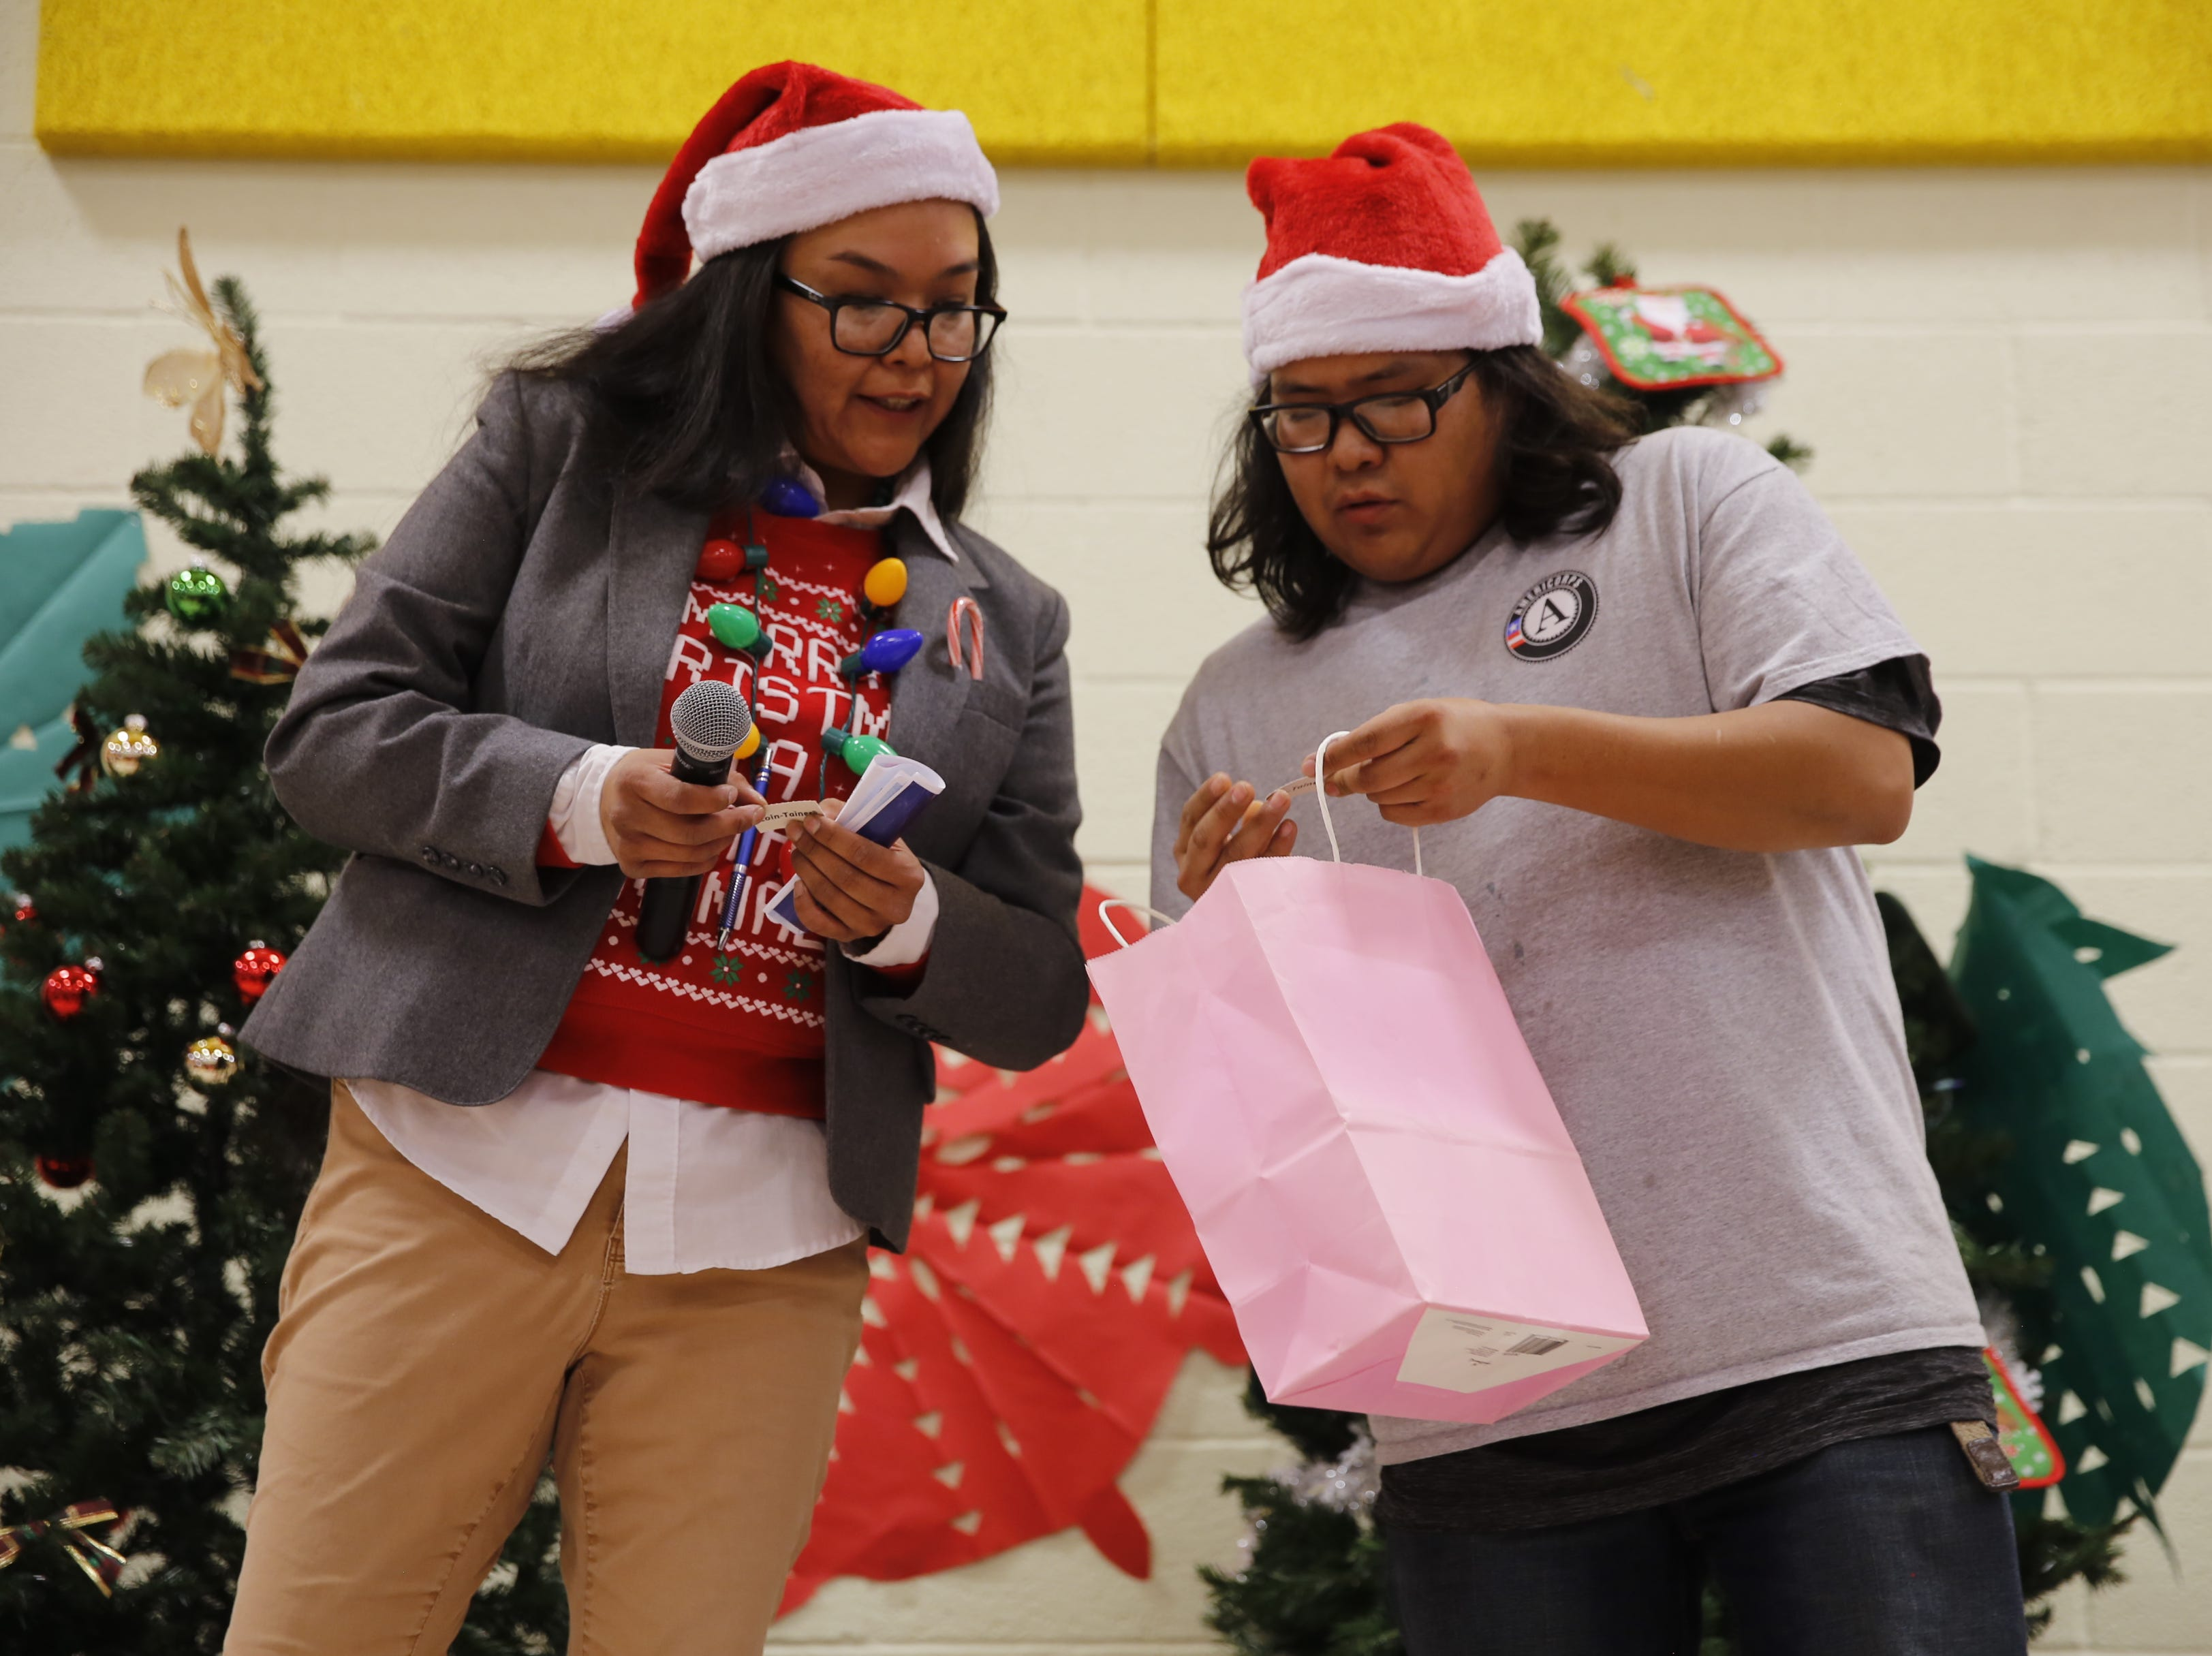 Trini King, left, and Arnold Keeswood check ticket numbers for a raffle during the family winter conference organized by Restoring and Celebrating Family Wellness on Wednesday at the Shiprock Youth Complex in Shiprock.